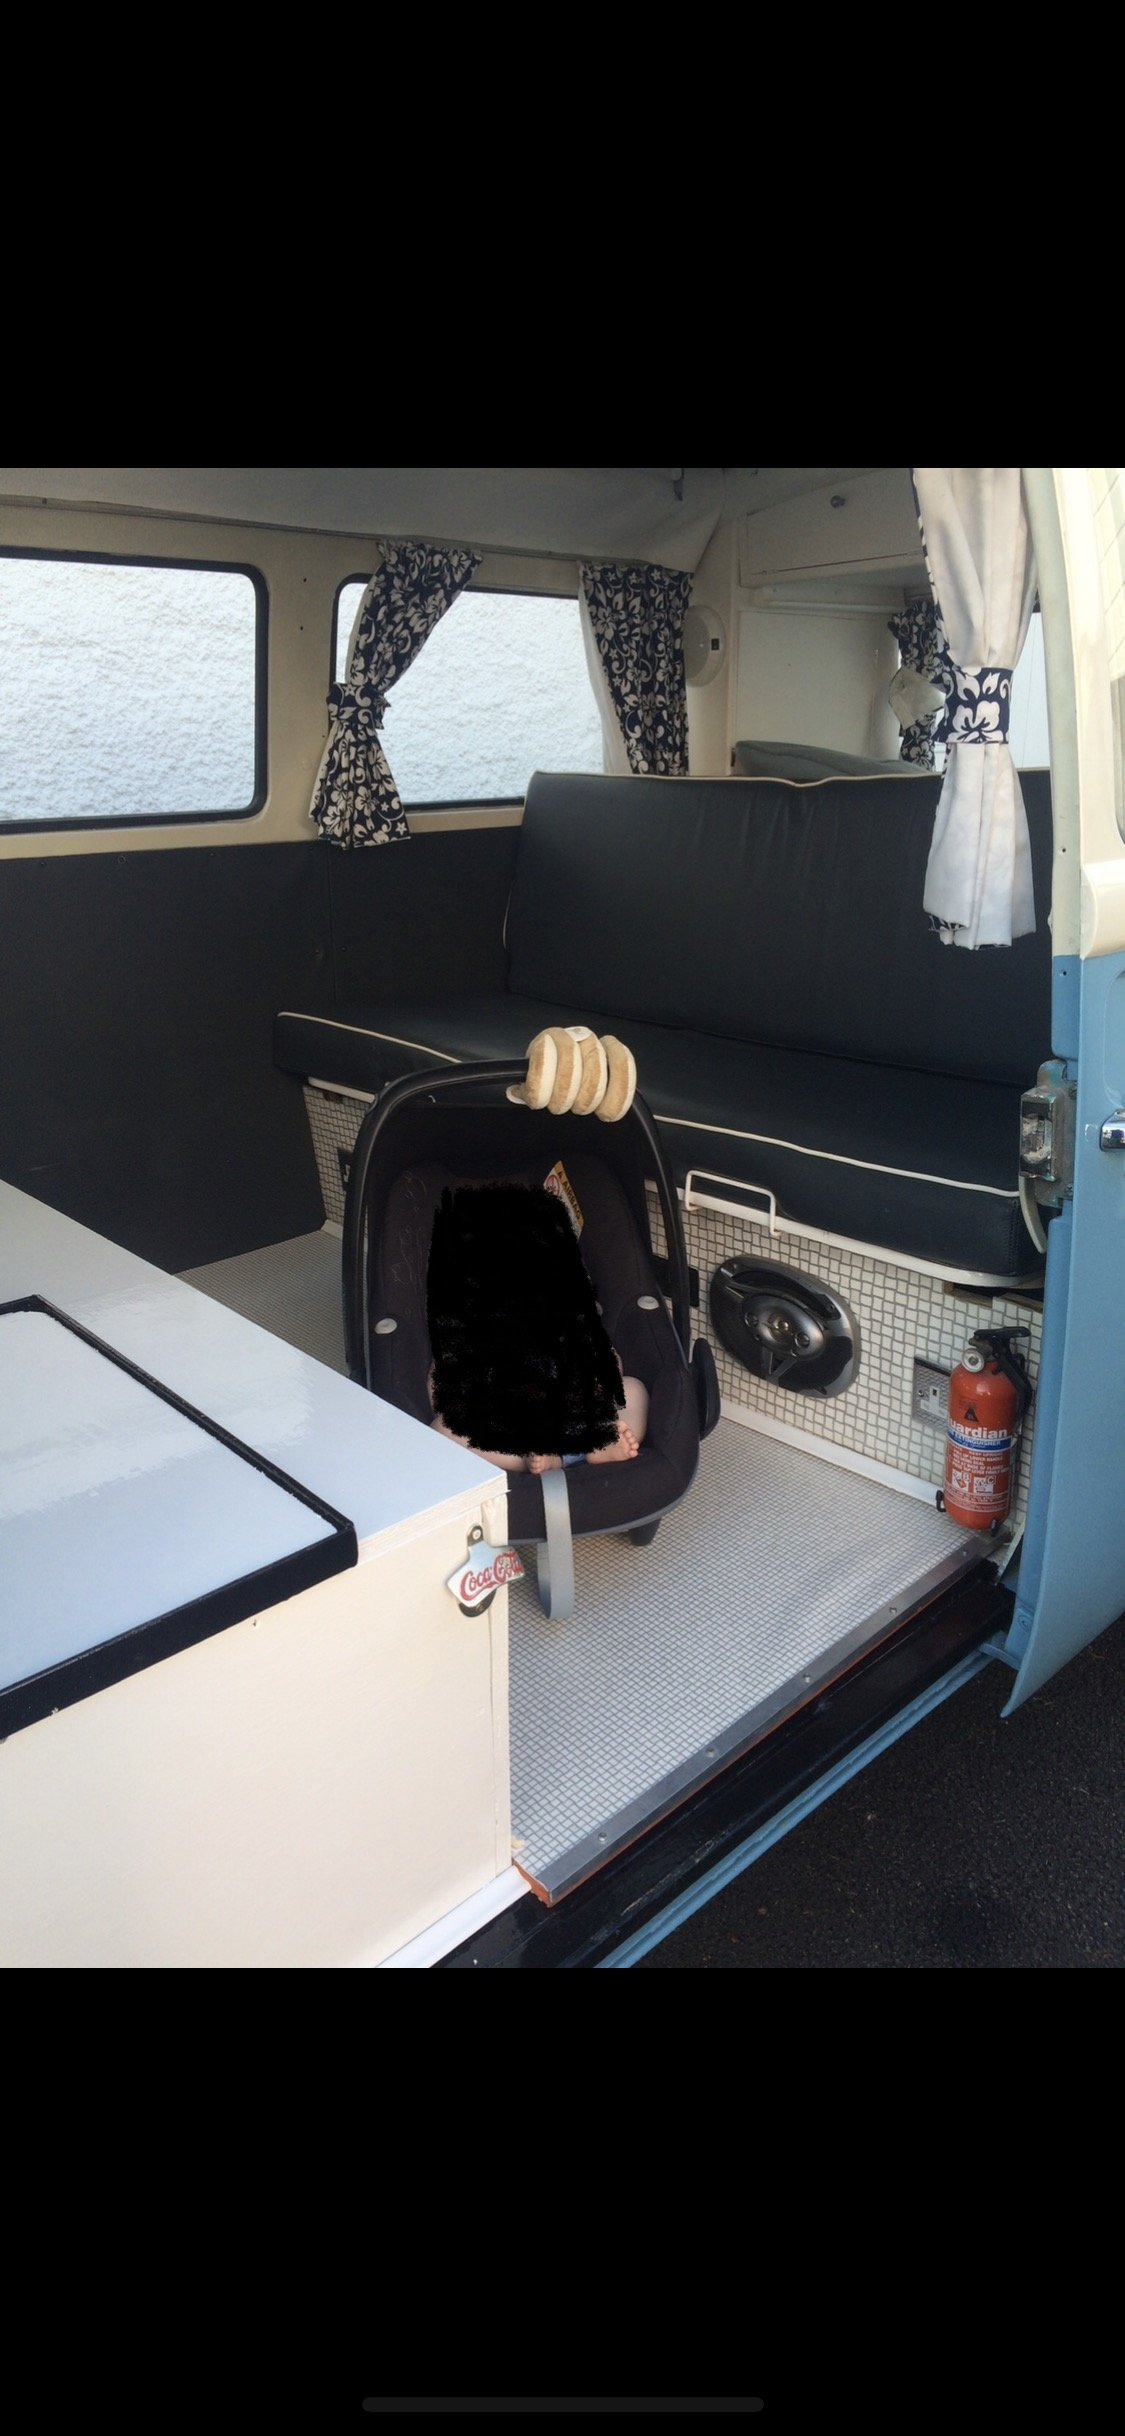 1973 T2 Devon bay window Campervan  For Sale (picture 1 of 4)